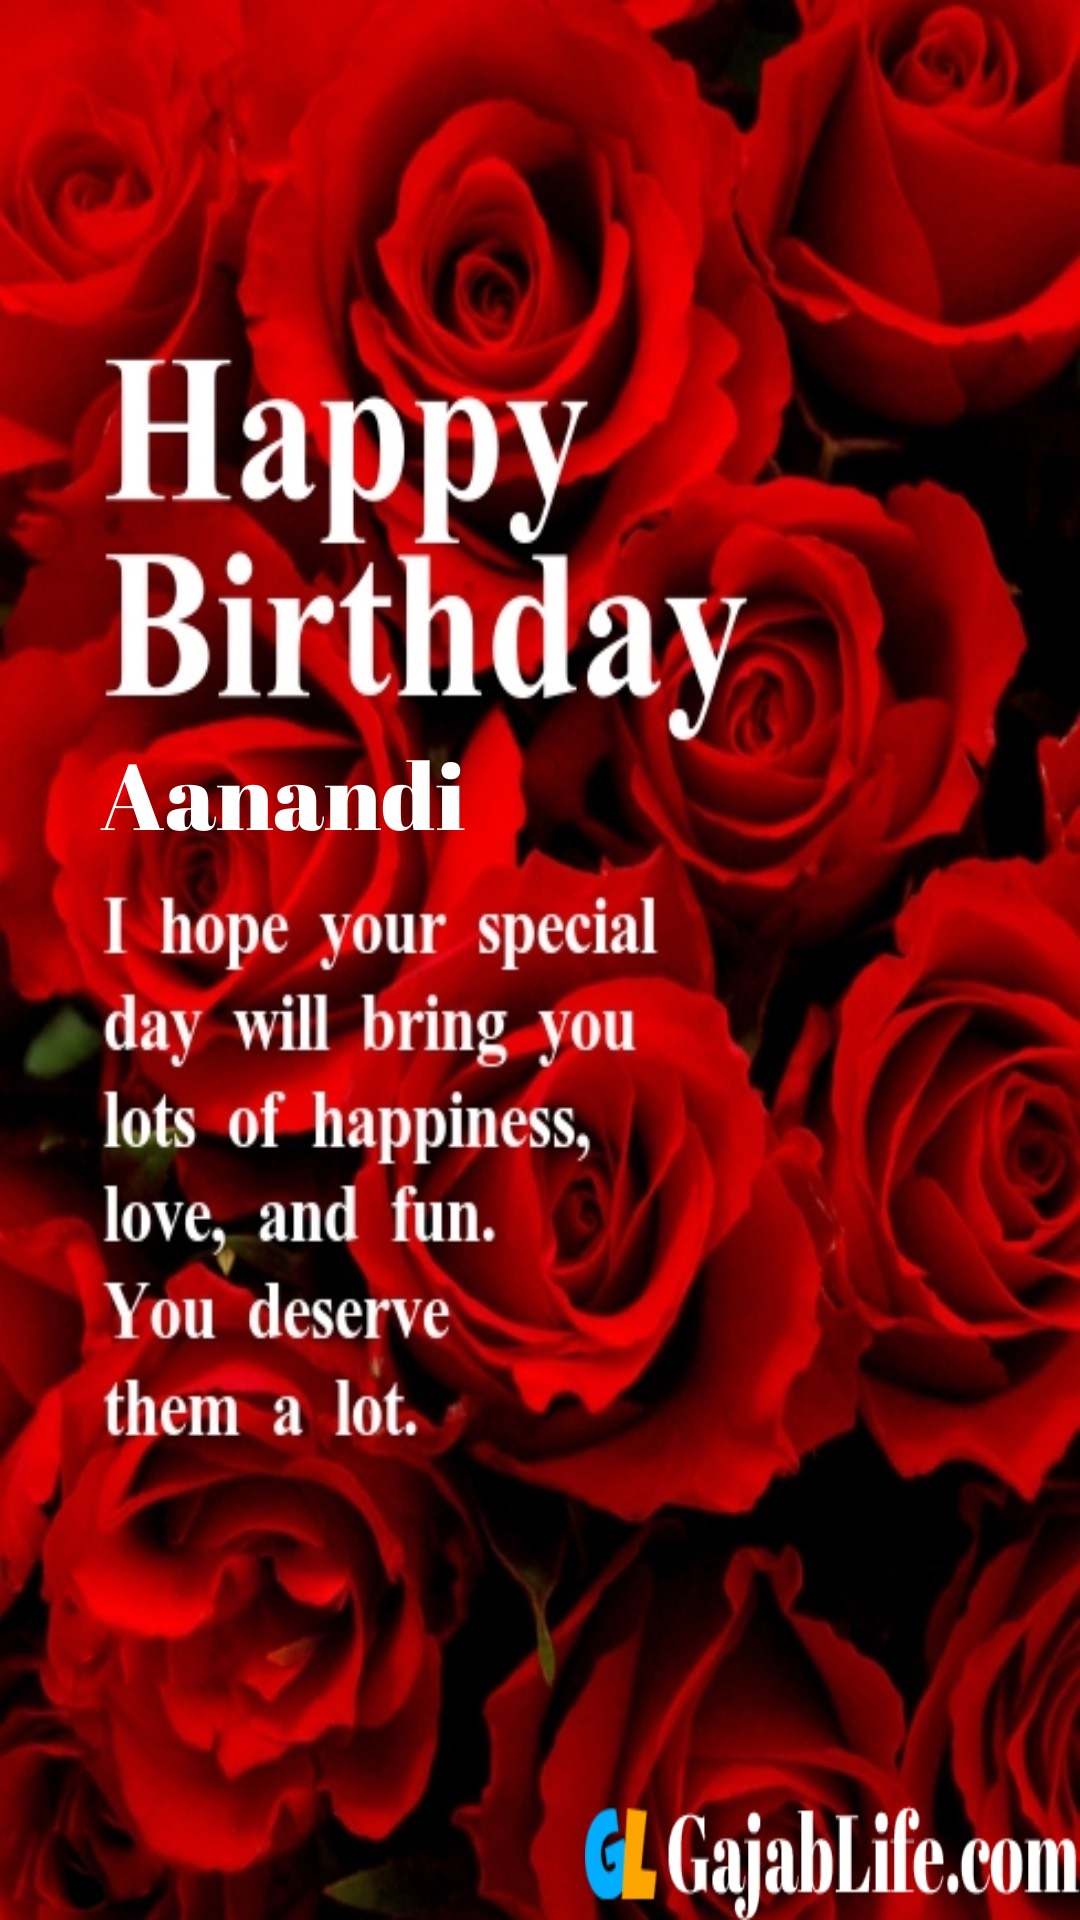 Aanandi birthday greeting card with rose & love